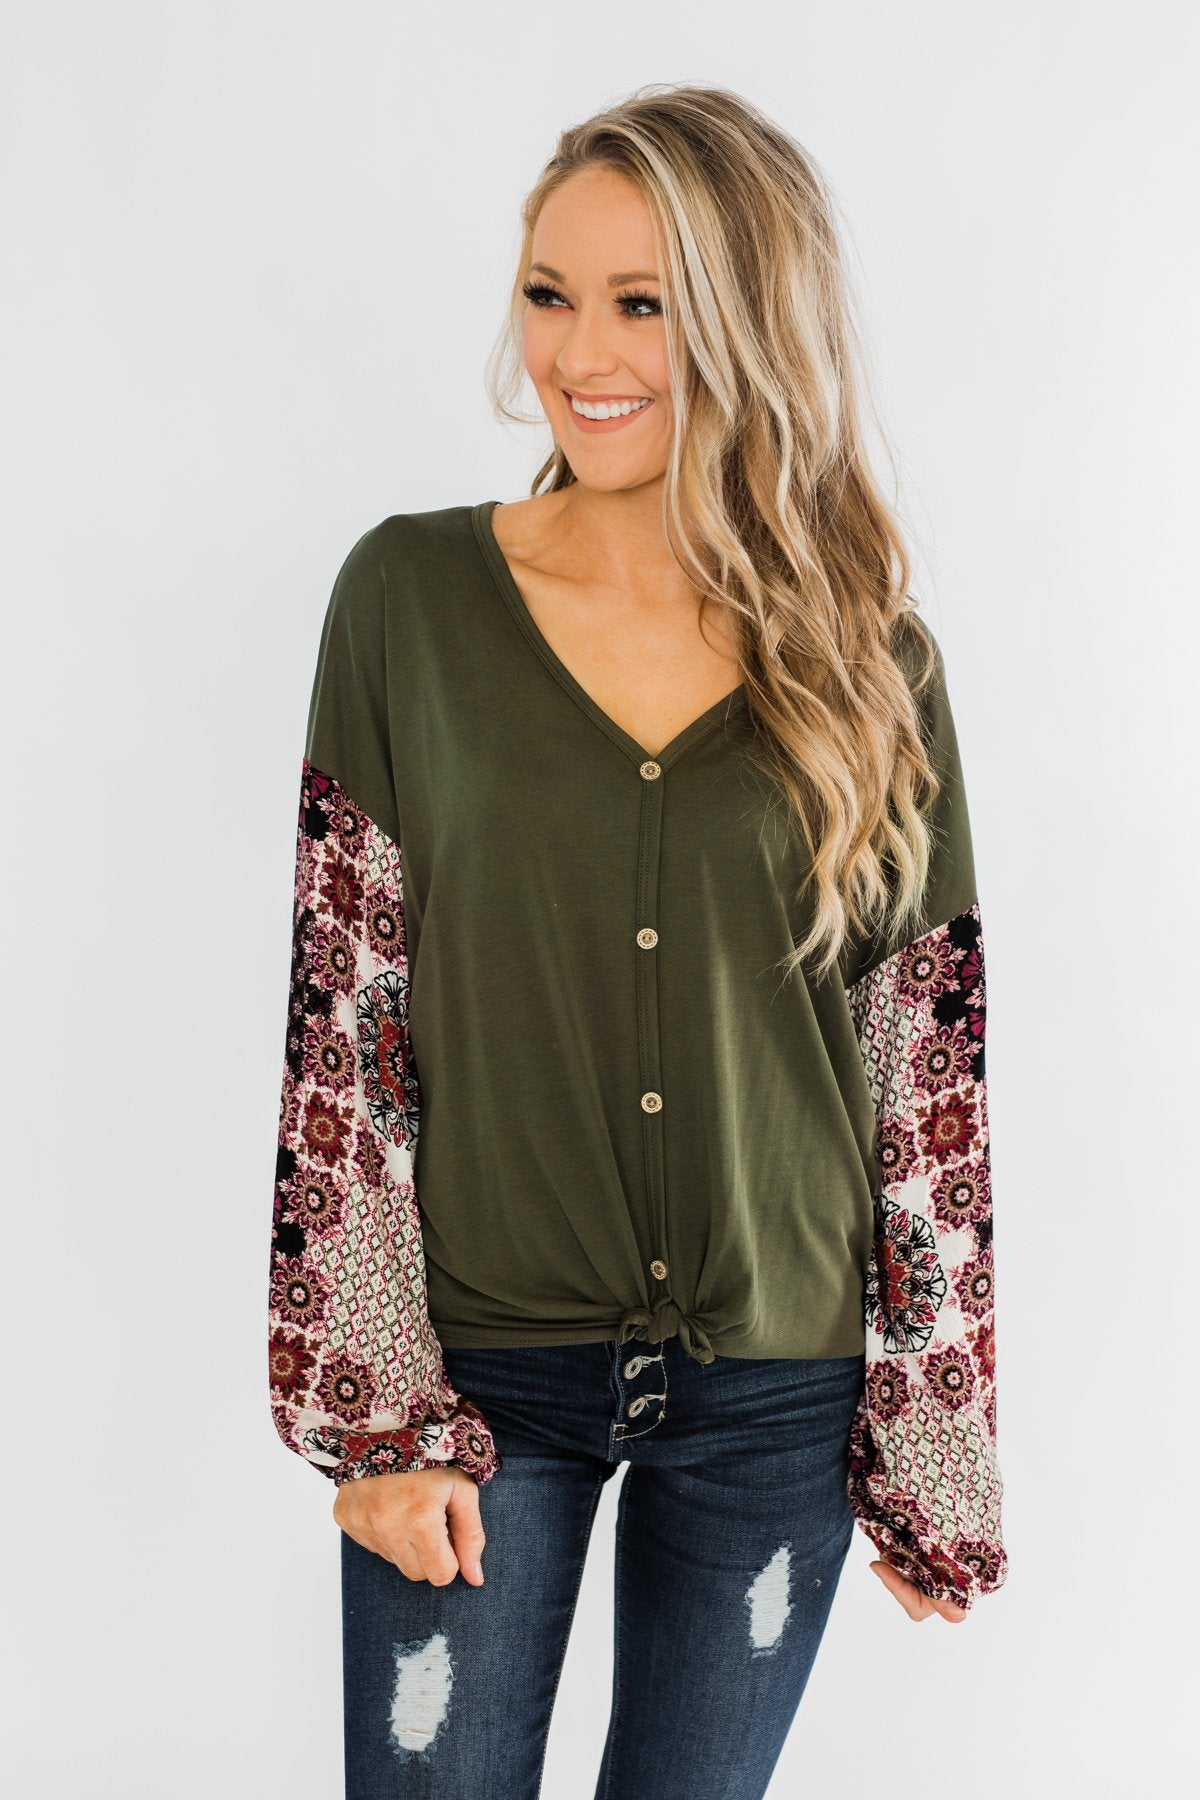 Stay Beautiful Floral Button Top- Olive